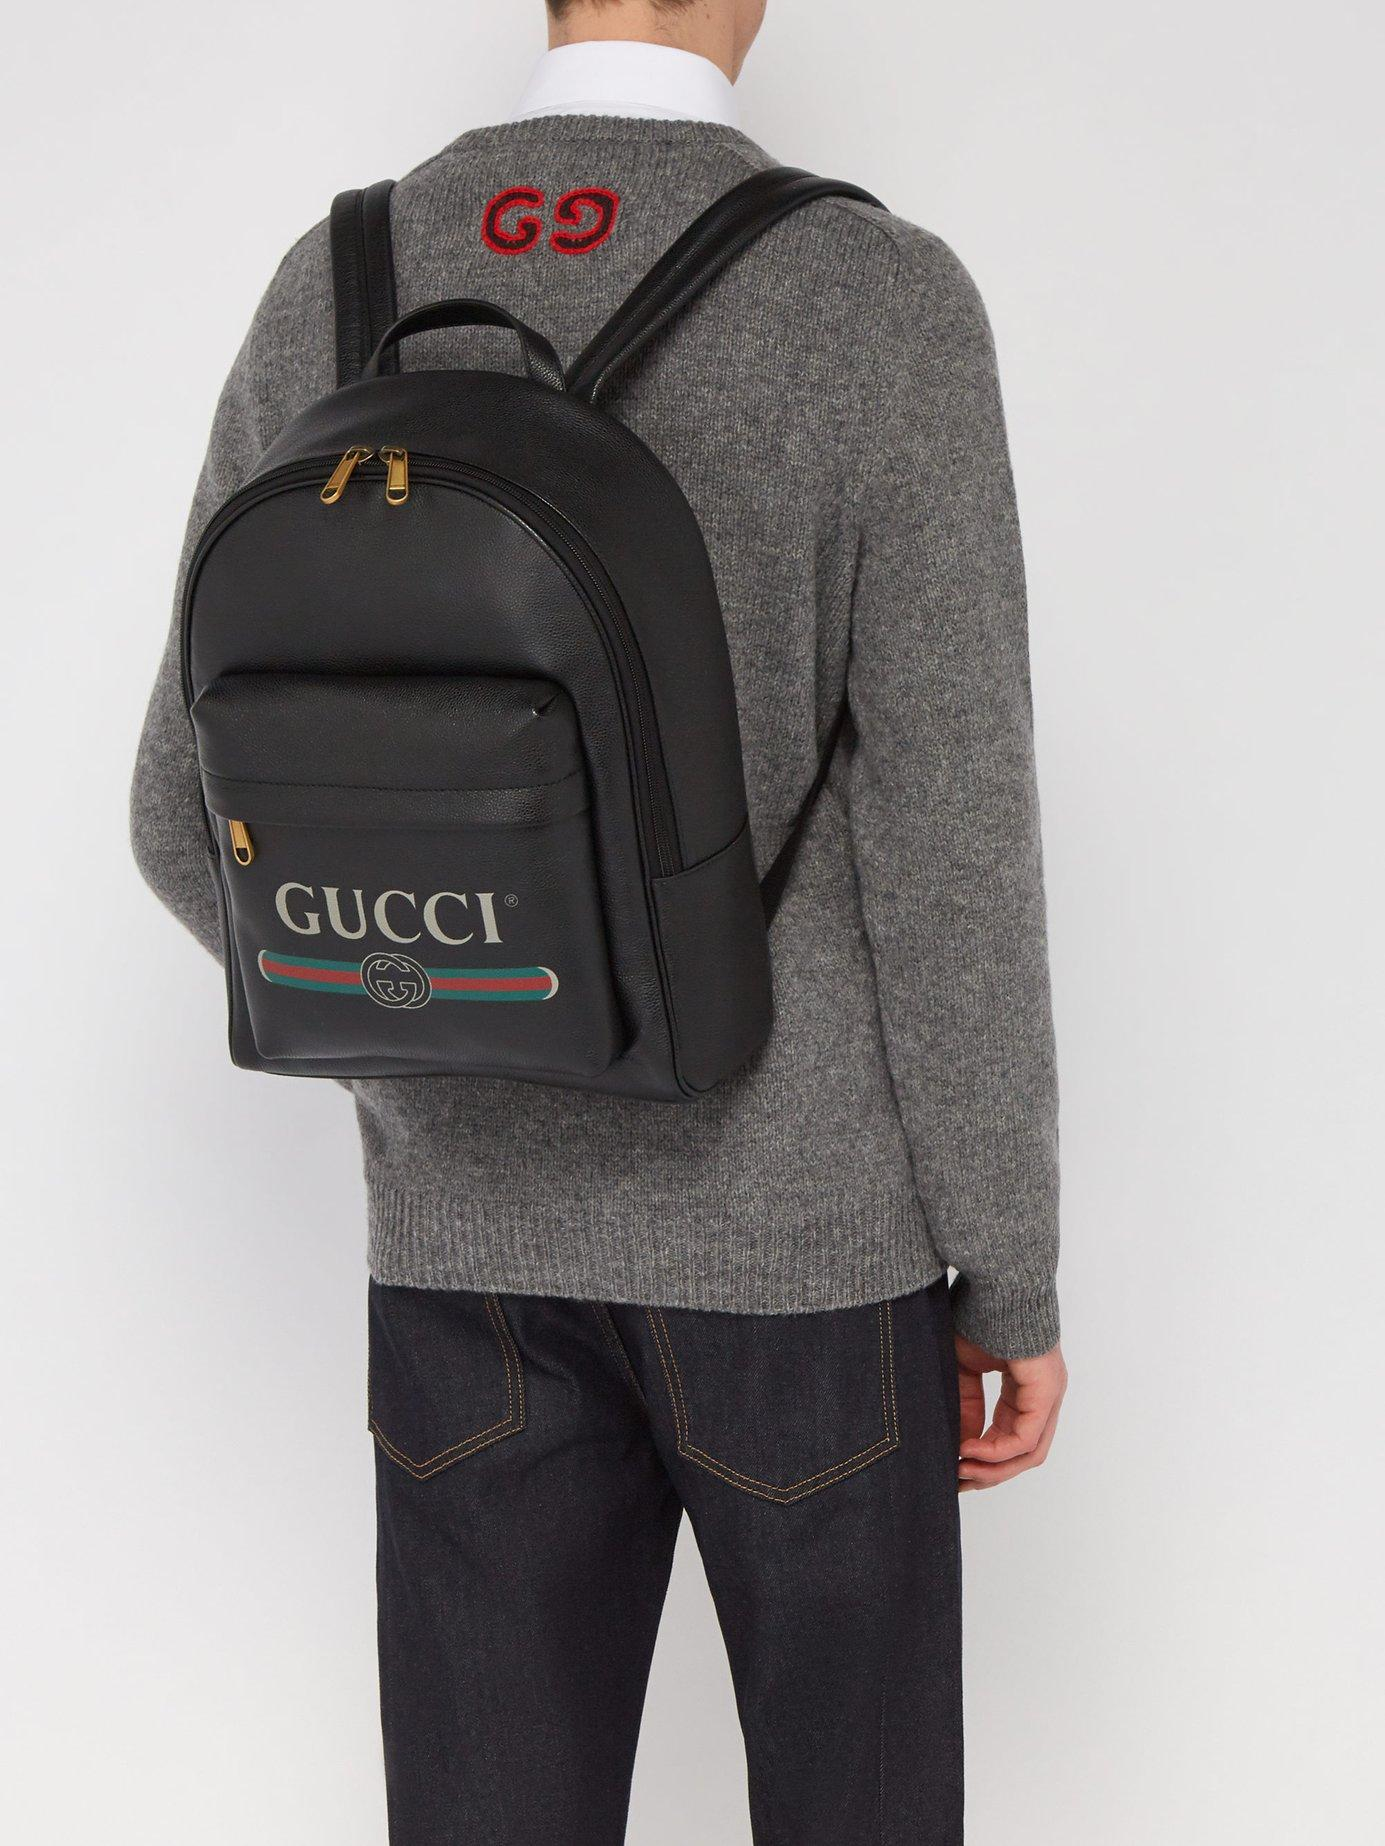 Gucci - Black Logo-printed Backpack for Men - Lyst. View fullscreen dc6eba6de4443